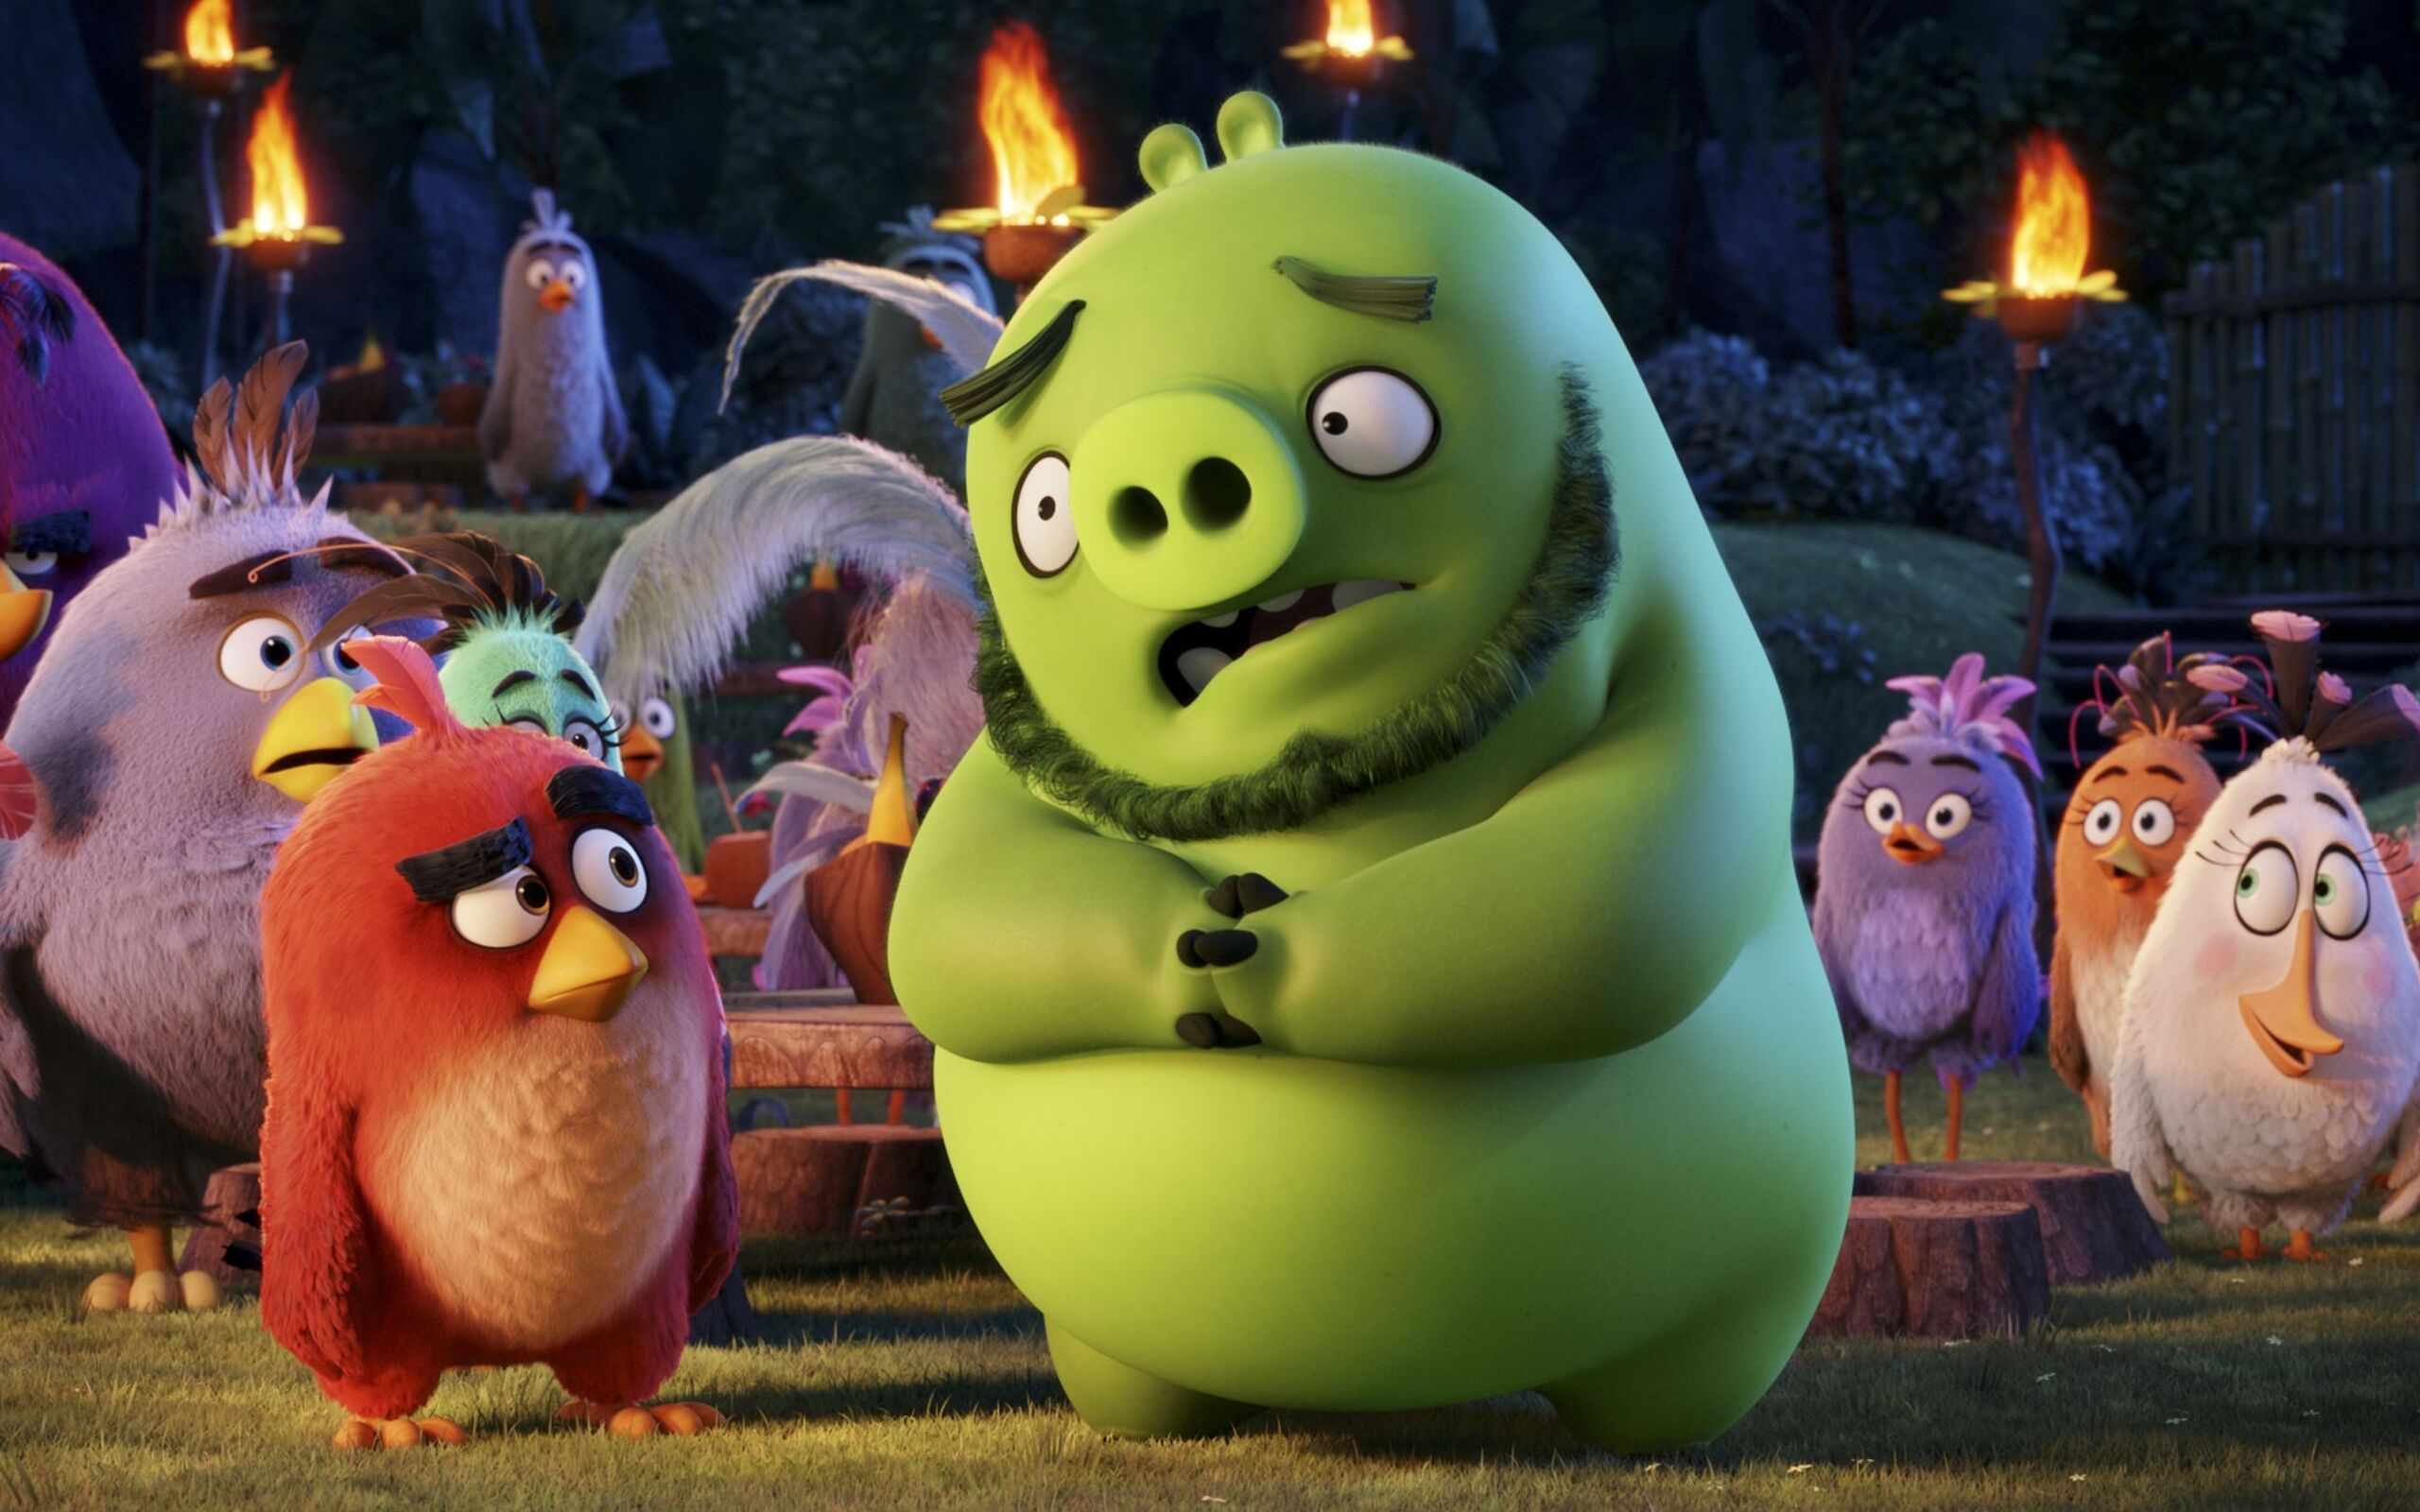 2560x1600 Angry Birds Movie 2016 2560x1600 Resolution Hd 4k Wallpapers Images Backgrounds Photos And Pictures